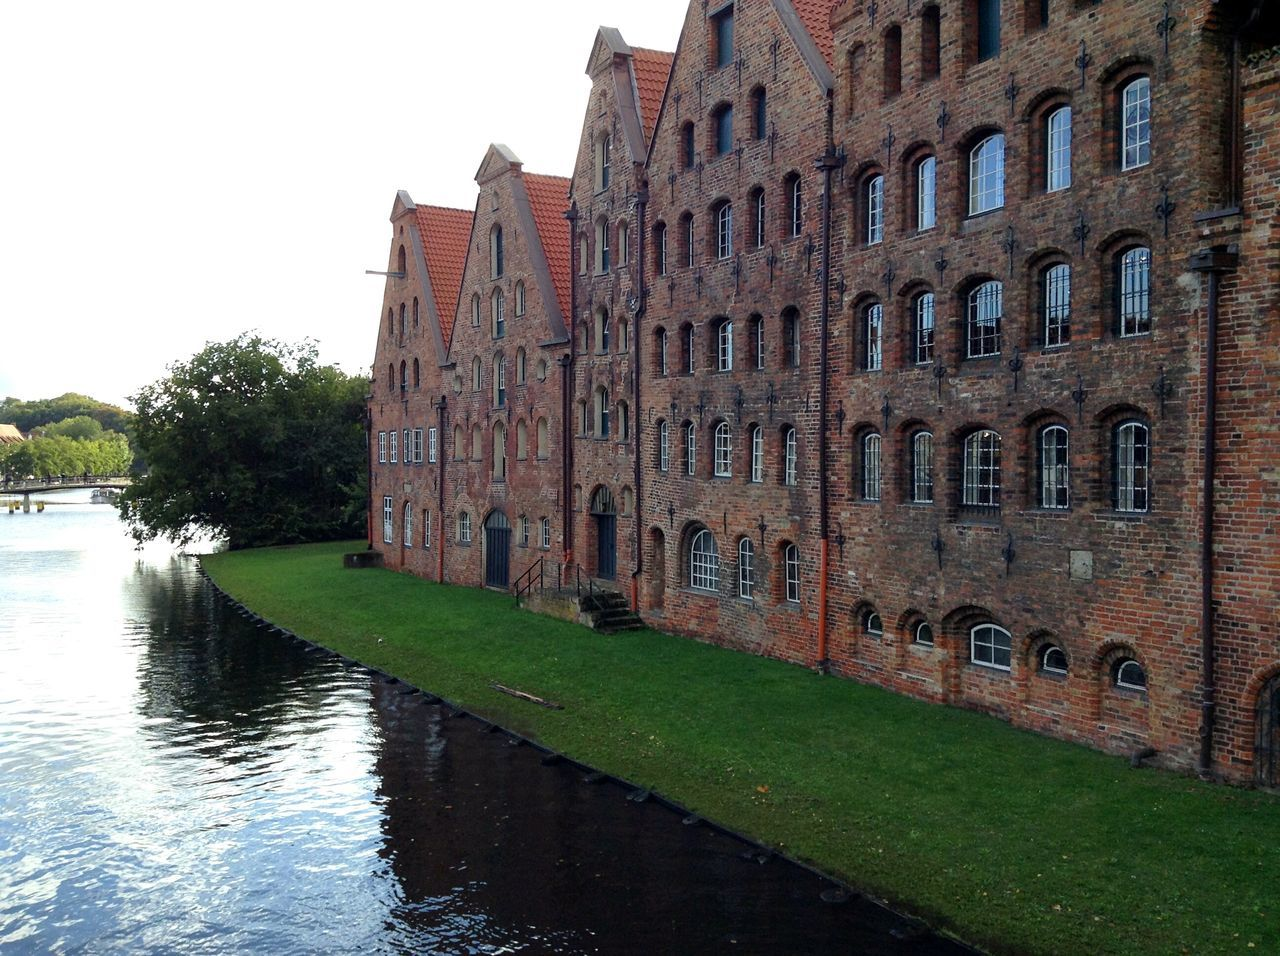 Historic Warehouses in Lübeck. · Germany Schleswig-Holstein Hansestadt Lübeck Hl Hanseatic Warehouse History Culture Old Town Architecture Brick Building Red Brick Waterfront Urban Exploration Nice Day